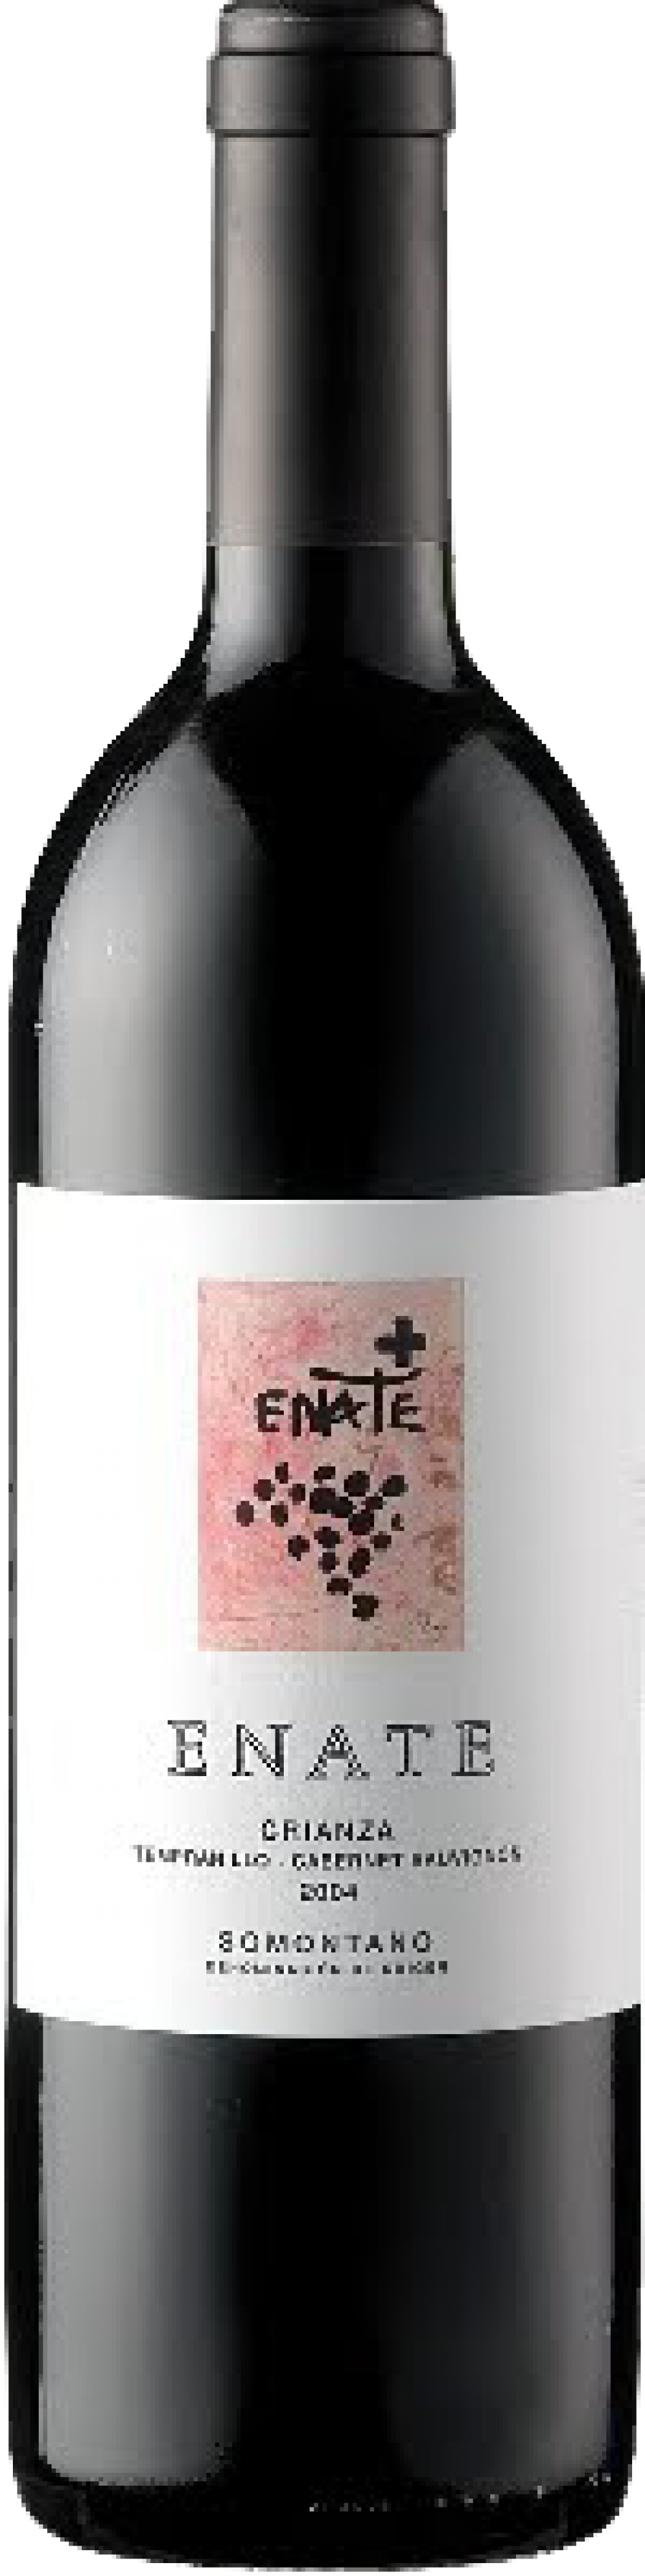 files/images/wines/Spain/enate-somontano/ESET2009_pic_big.png